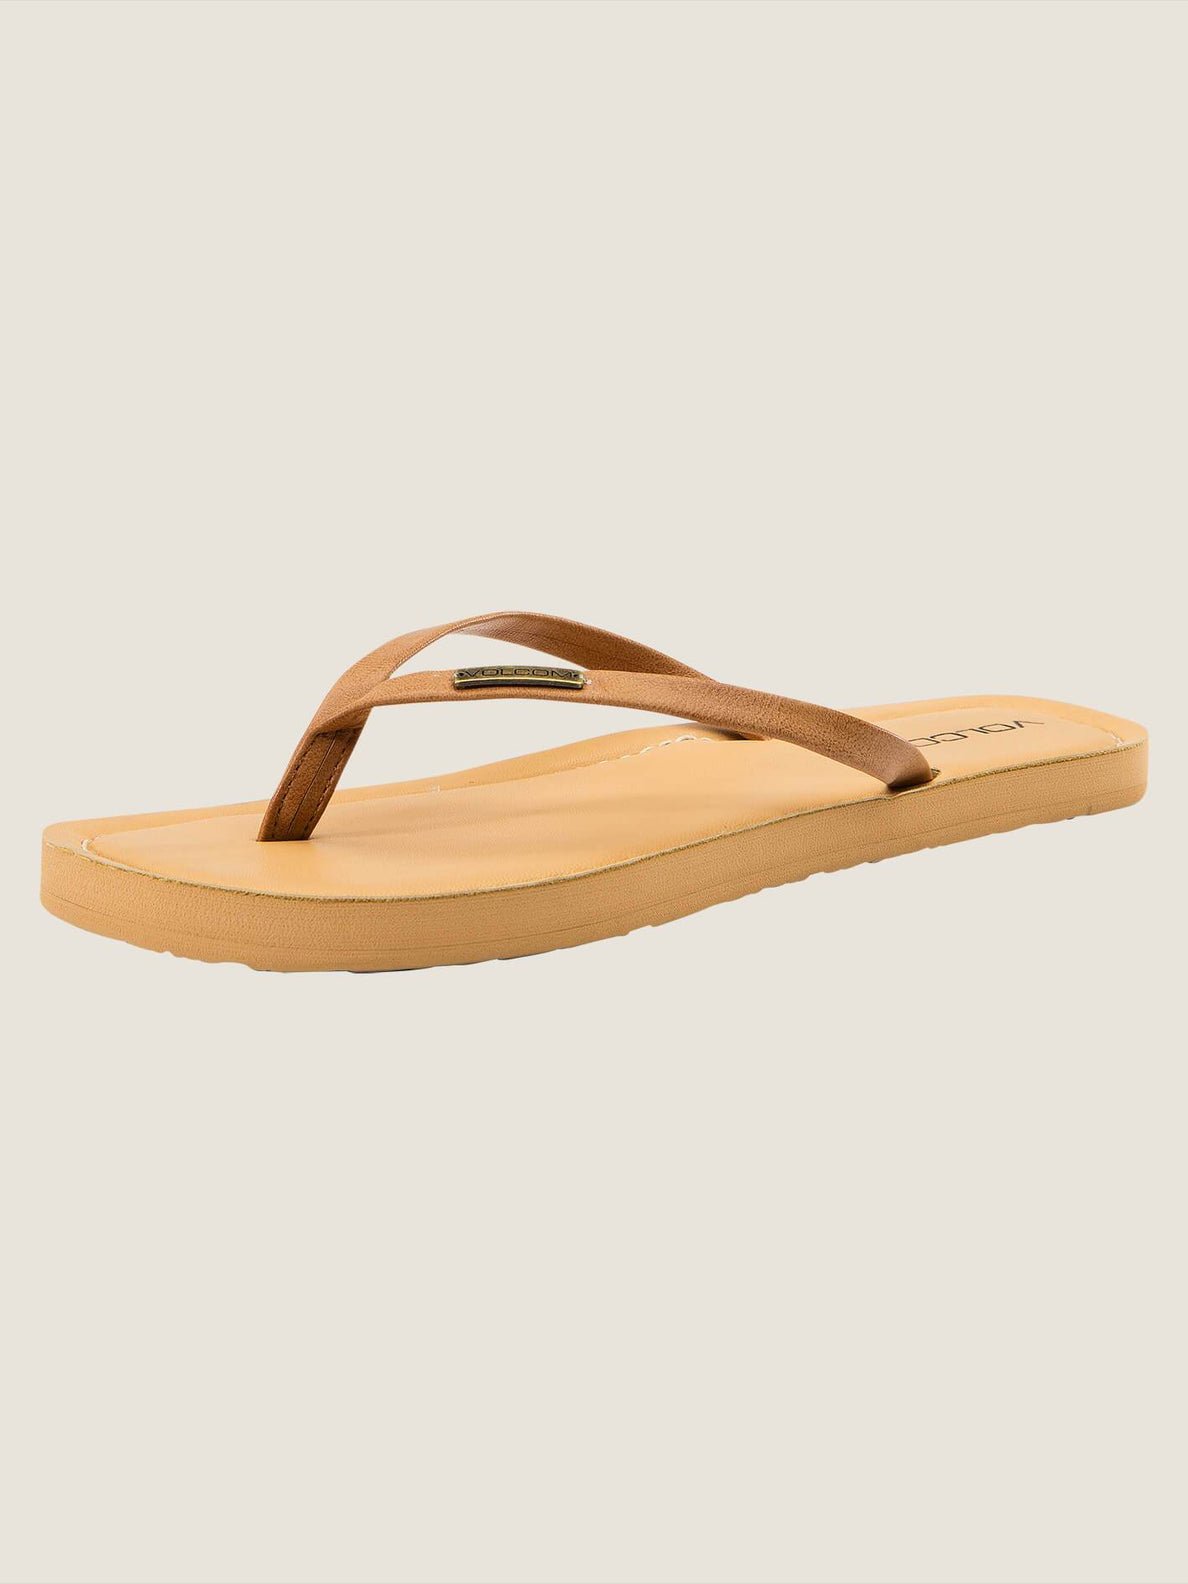 Lagos Sandals In Tan, Back View